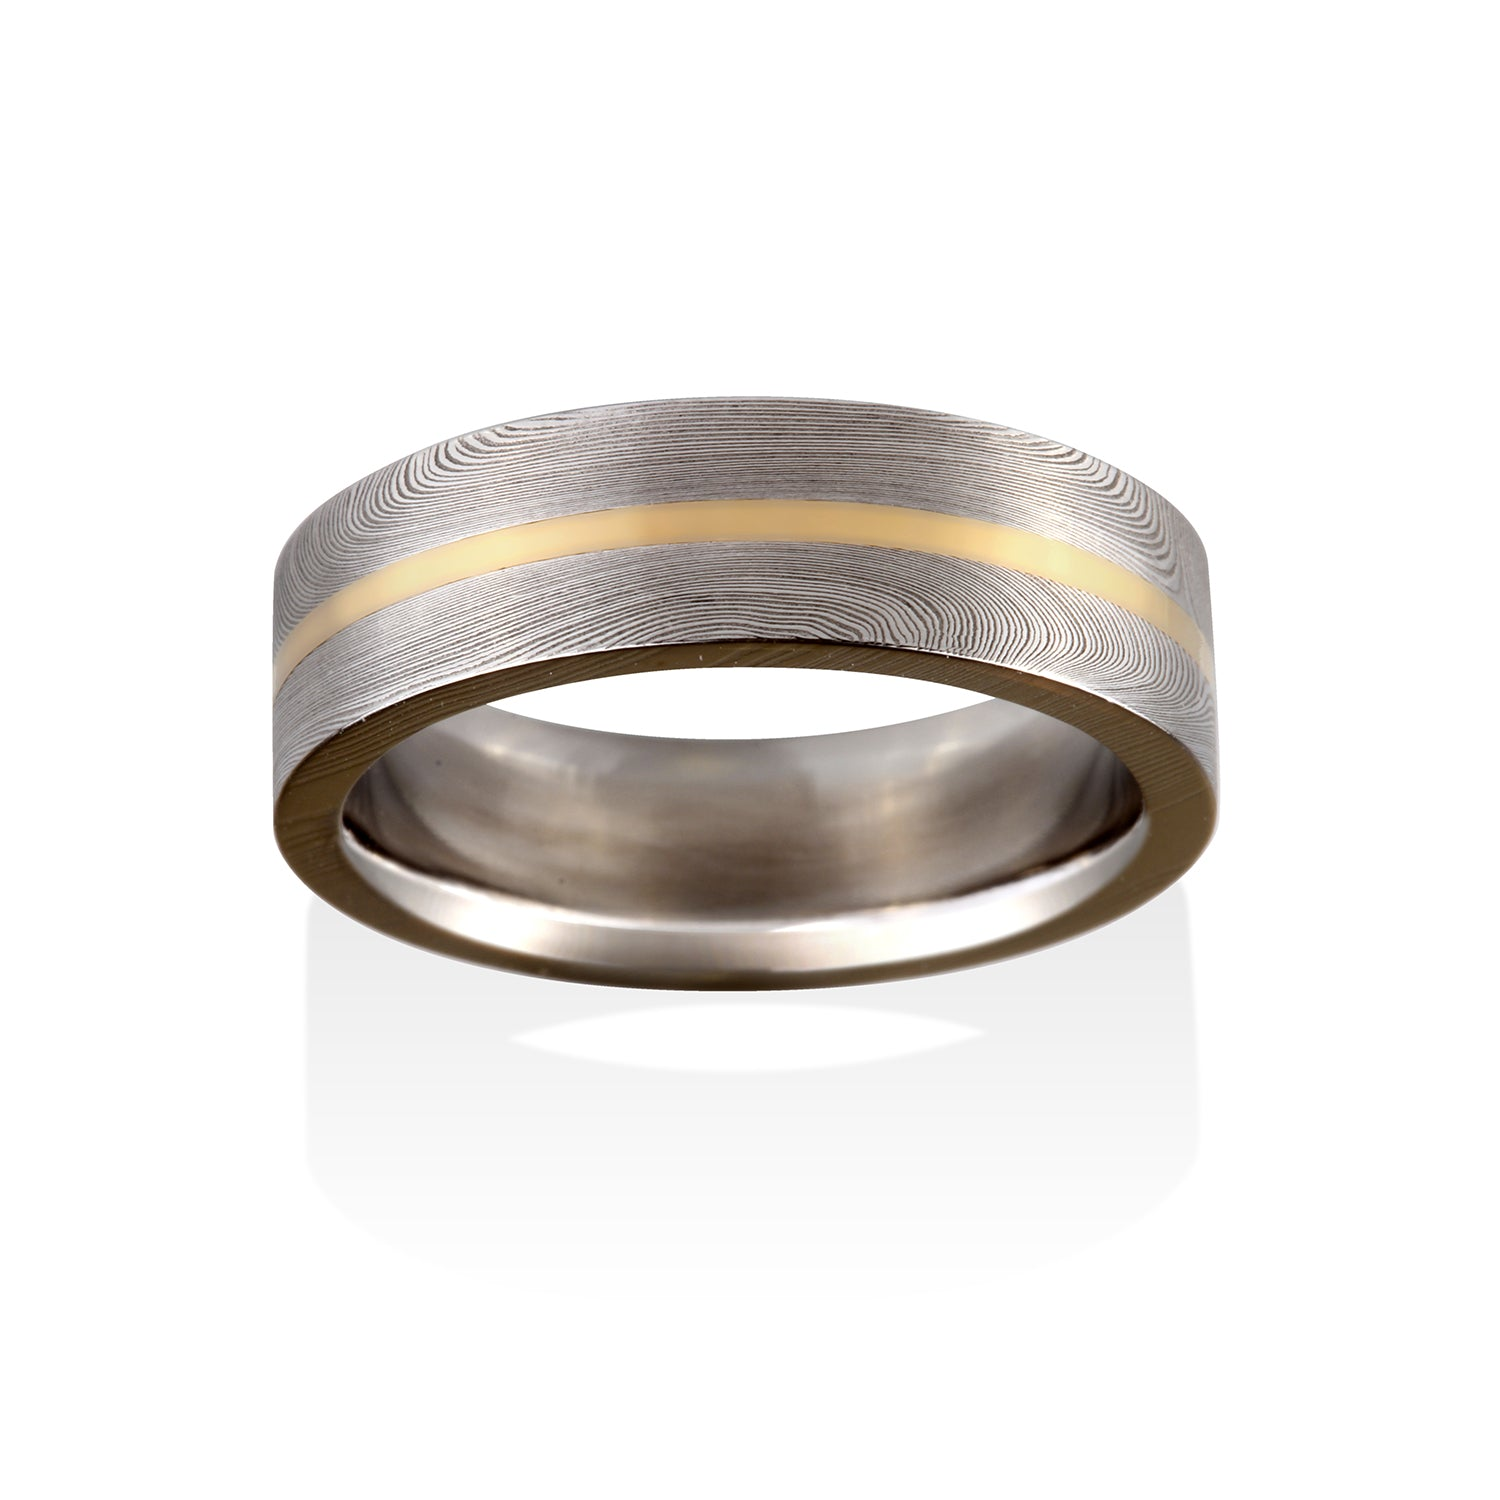 Starlight Damascus Ring by Chris Ploof - 18K Yellow Gold Inlay - Talisman Collection Fine Jewelers